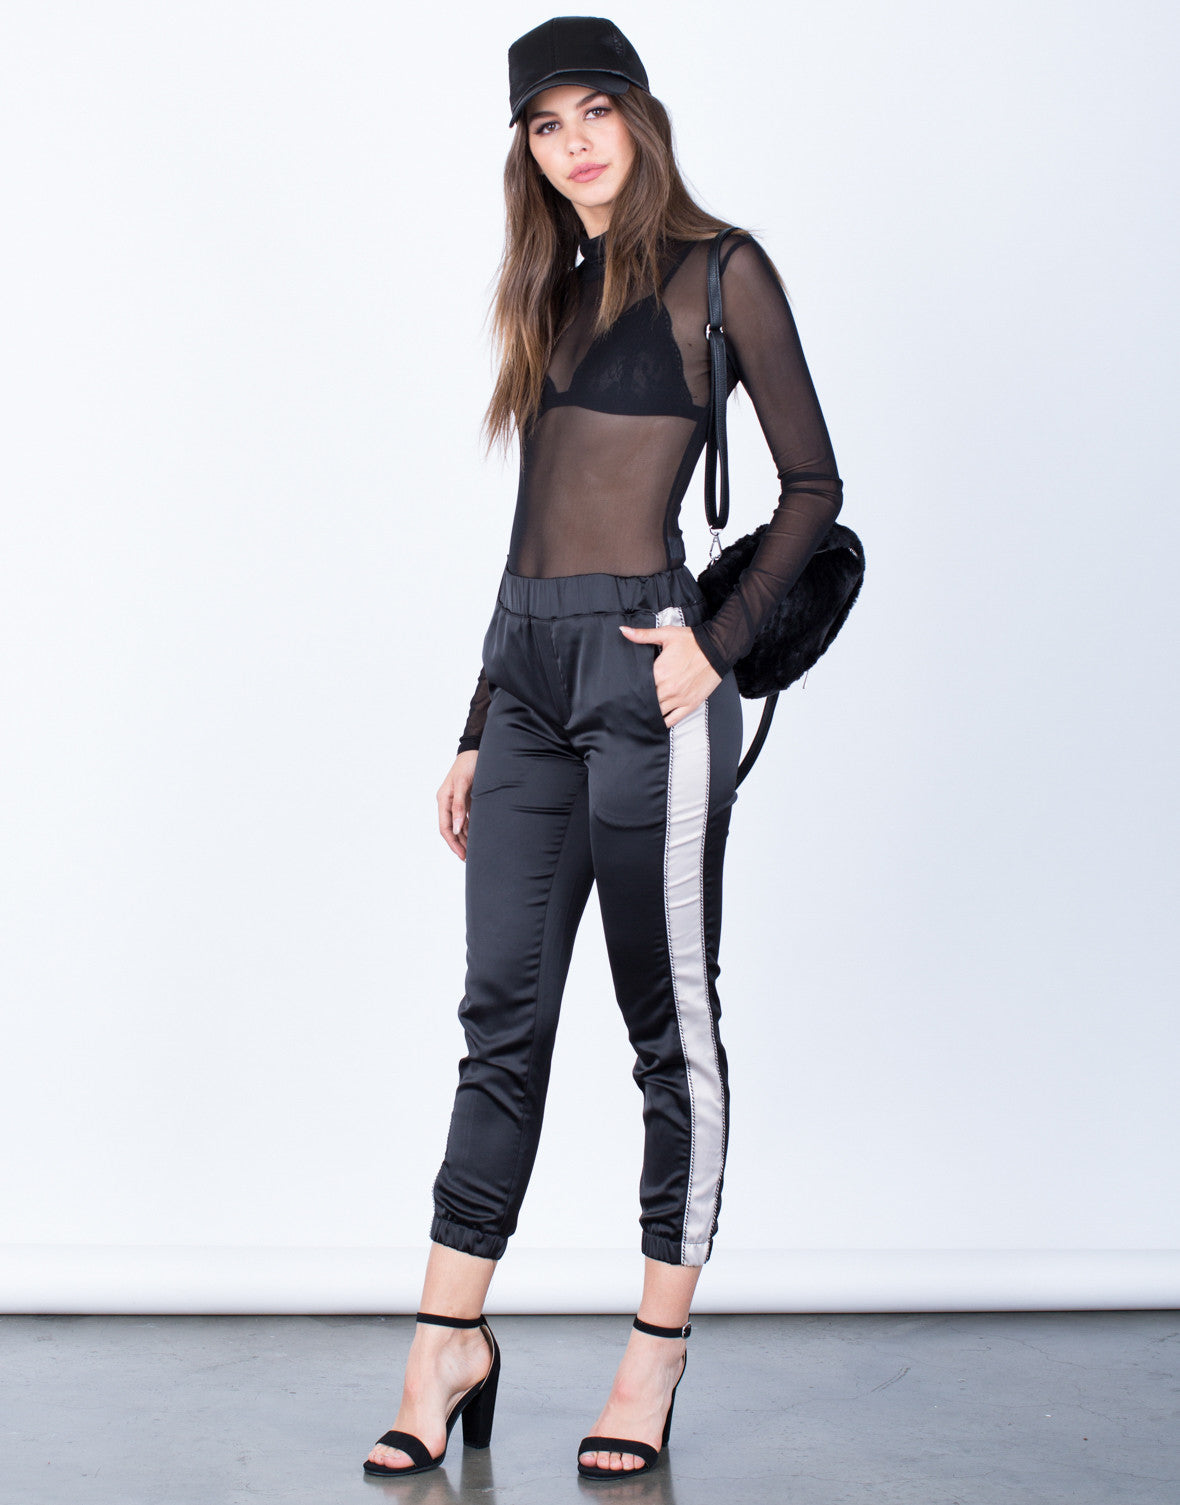 Satin Contrast Pants